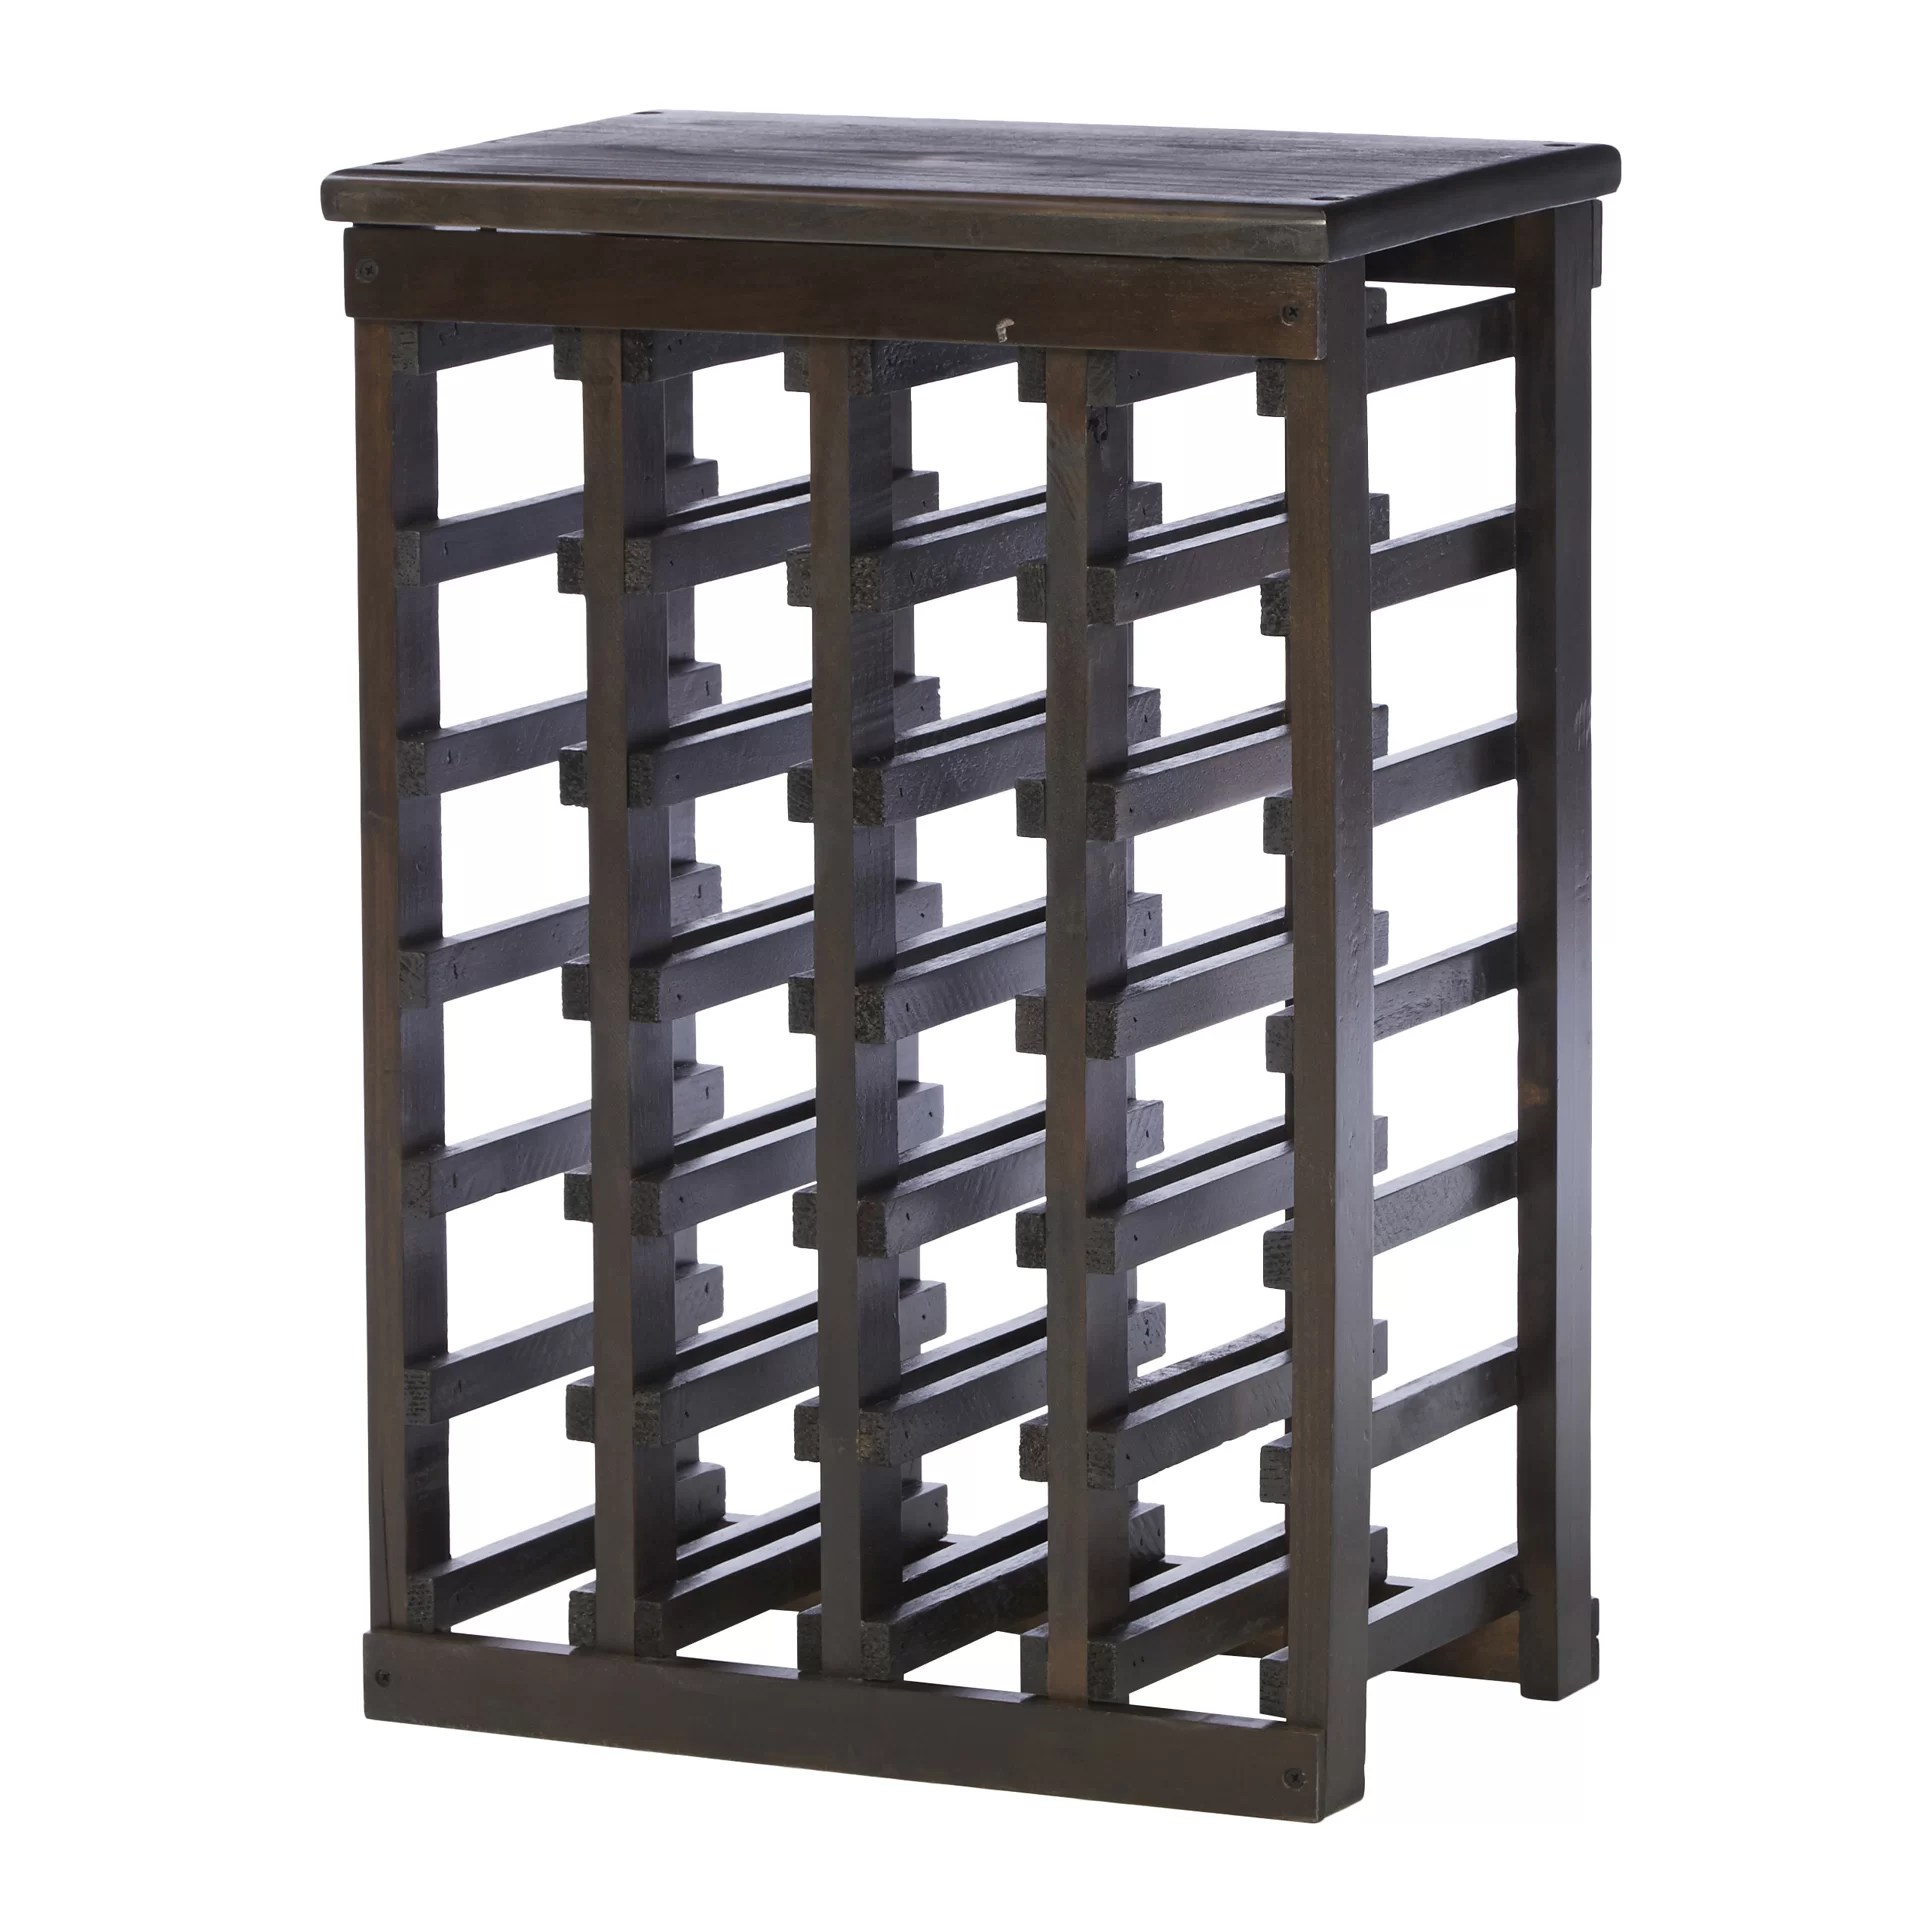 Wooden Bottle Rack Garris 24 Bottle Floor Wine Bottle Rack